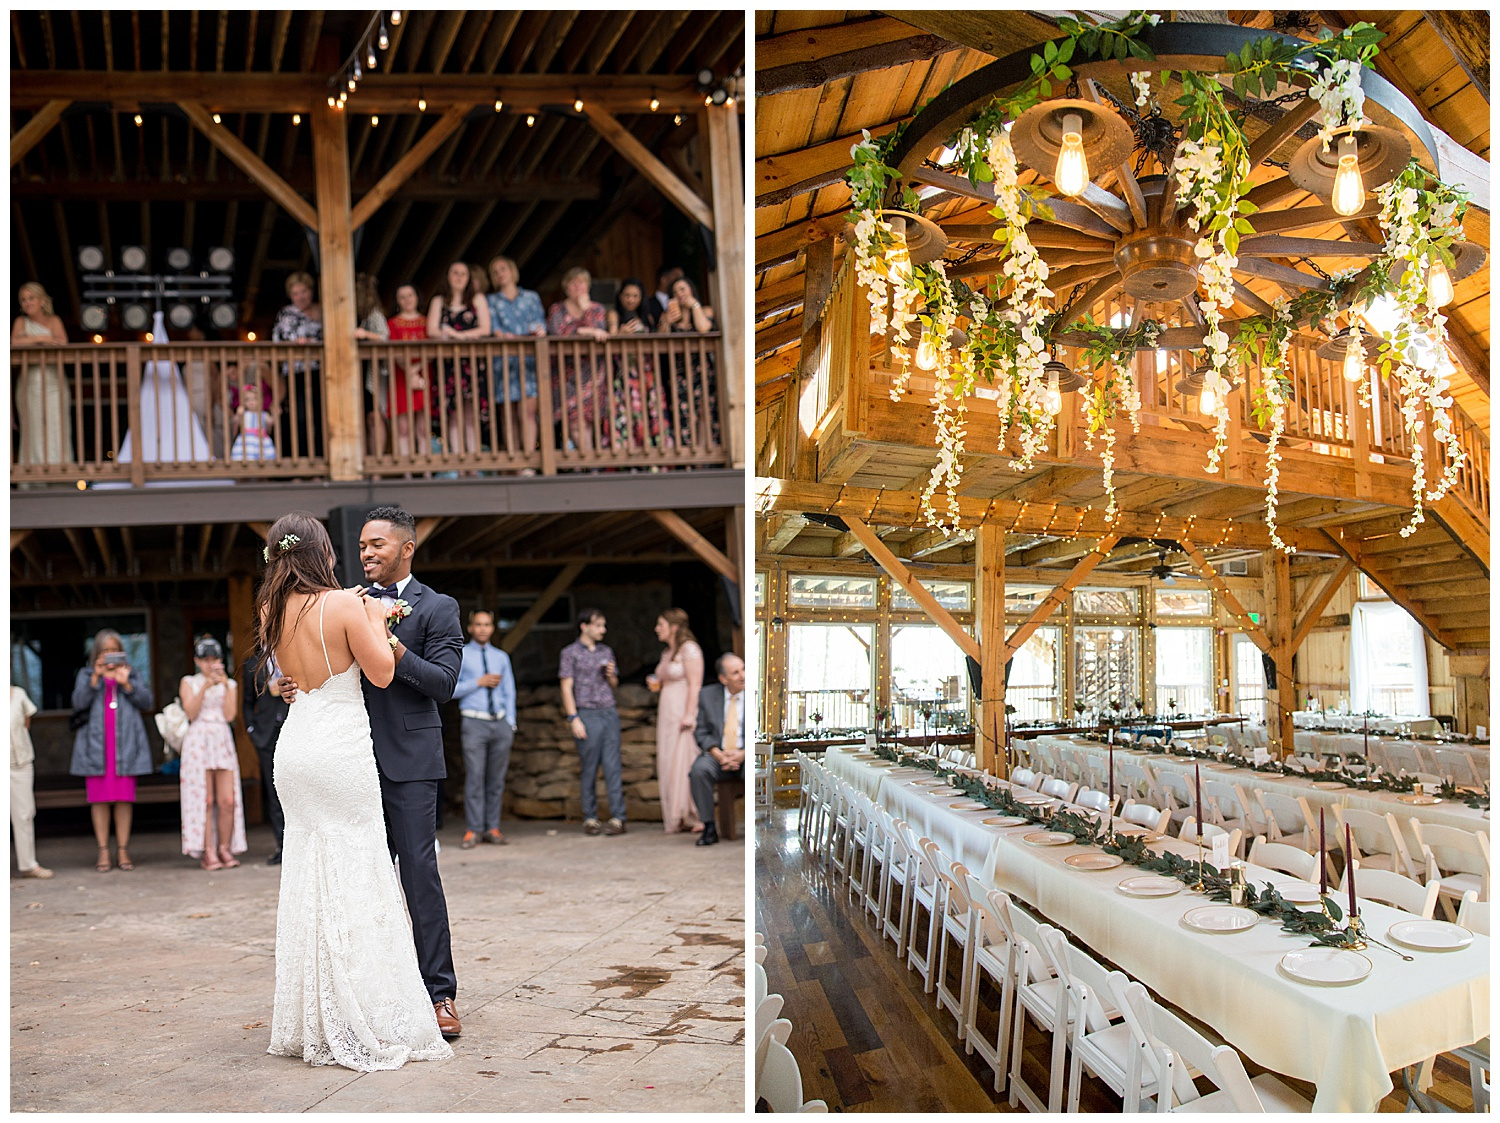 Grand Barn Mohicans Wedding Venue